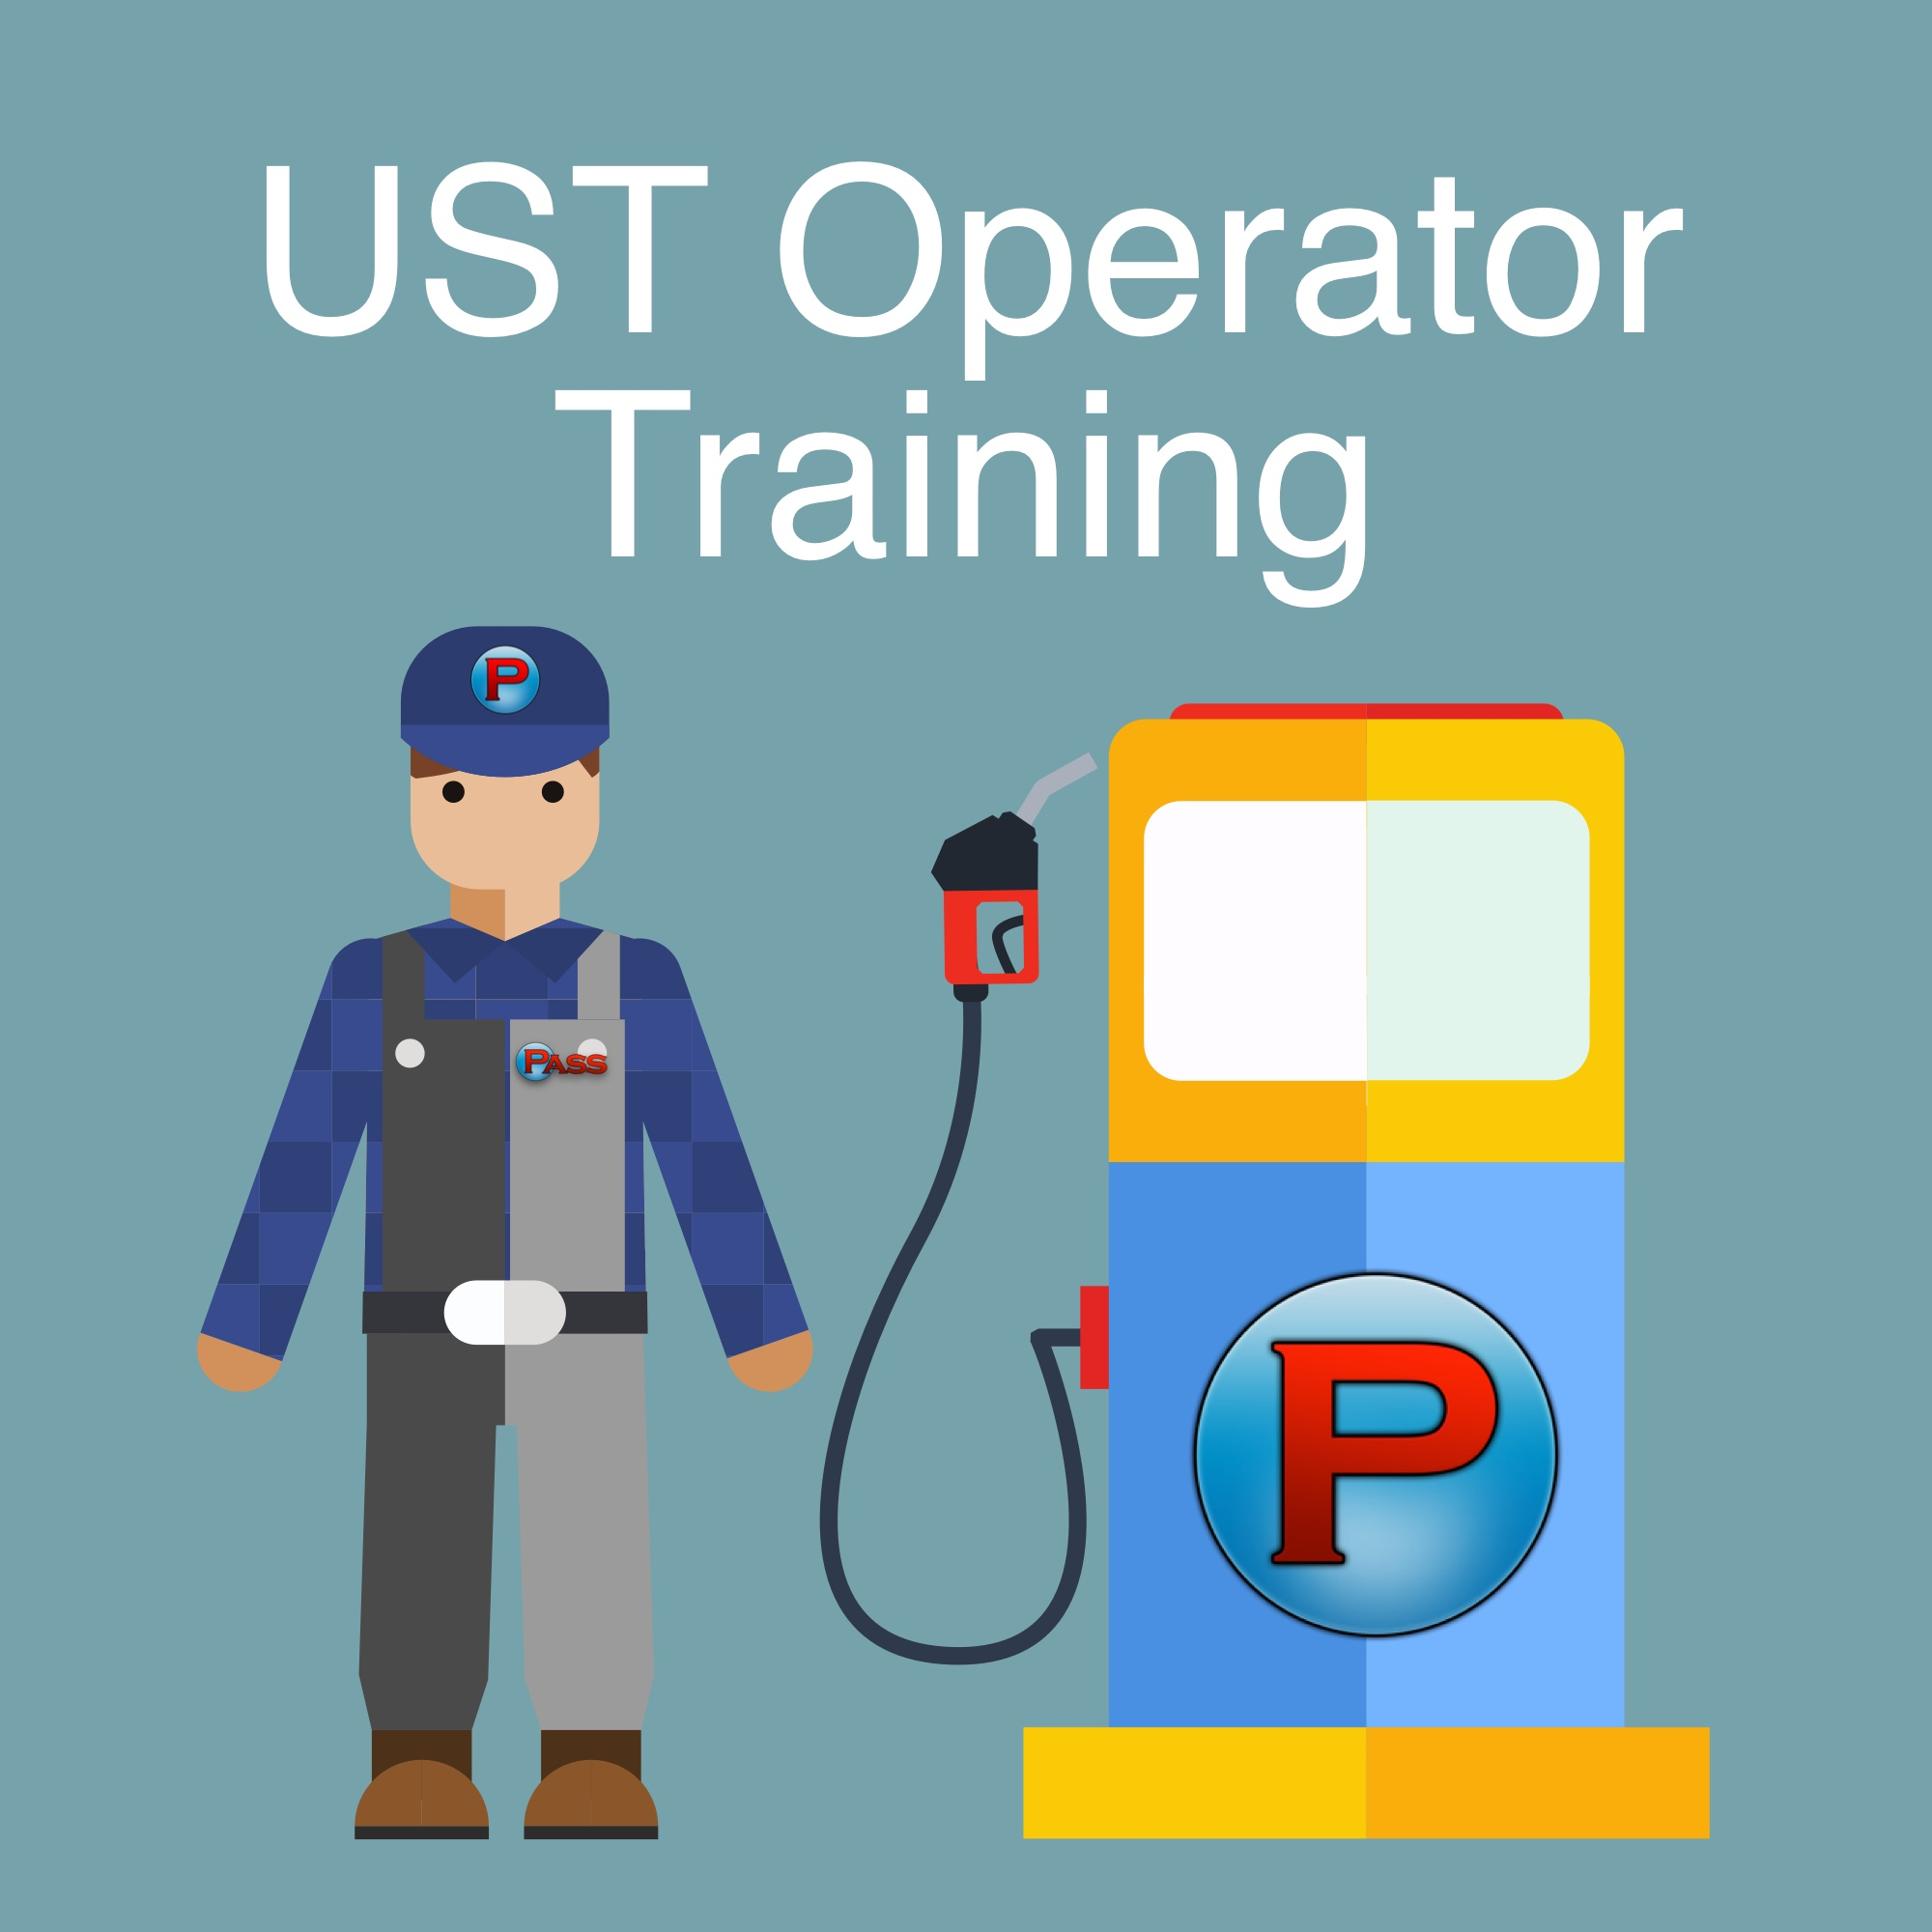 MAC TRAINING - MAC Services has partnership with PASS to deliver state approved UST Class A/B and C Operator Training.